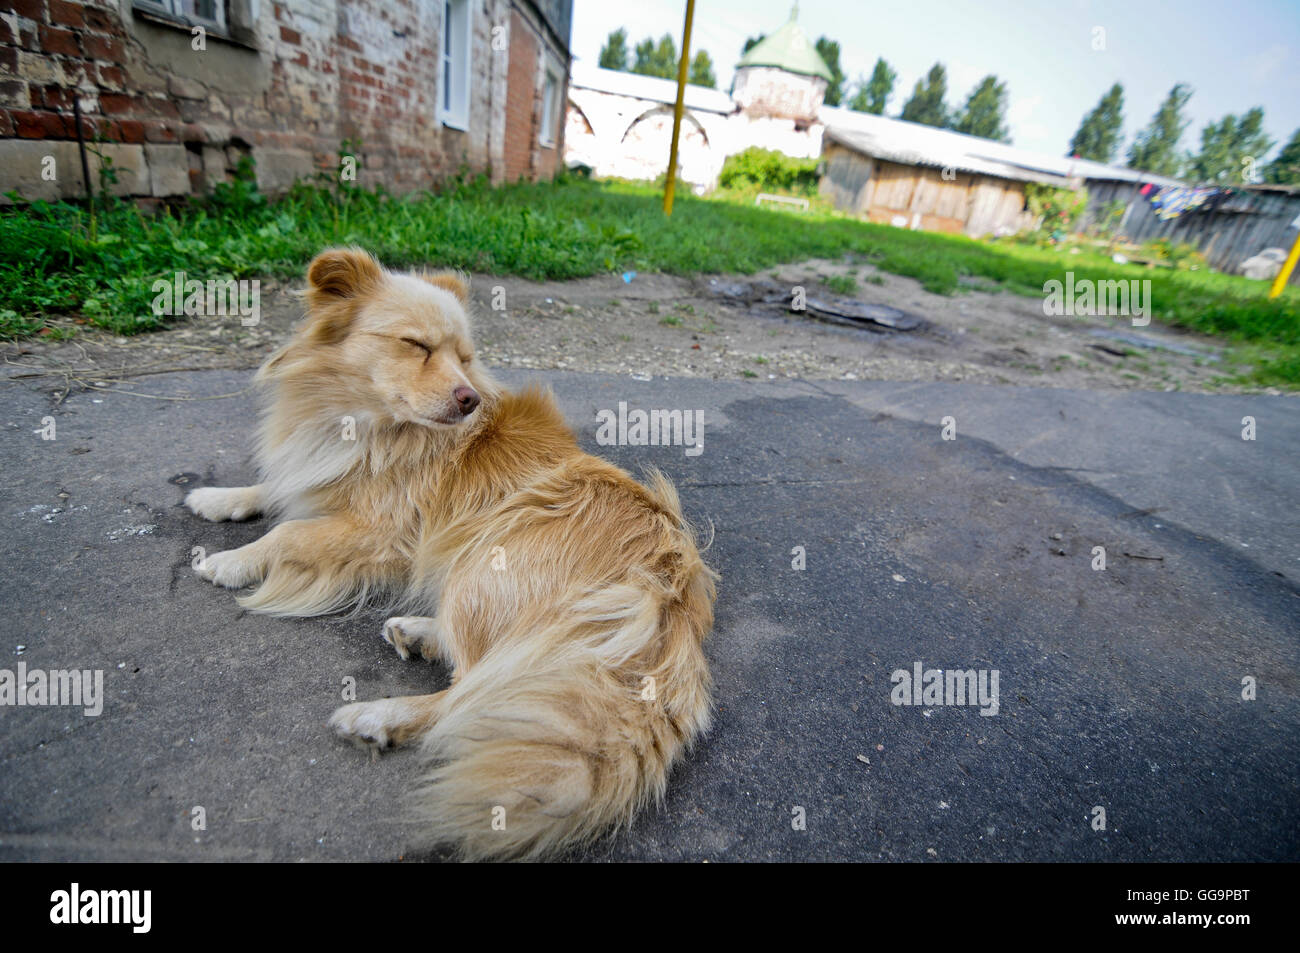 Mixed breed dog lying on the street in Suzdal, Russia - Stock Image